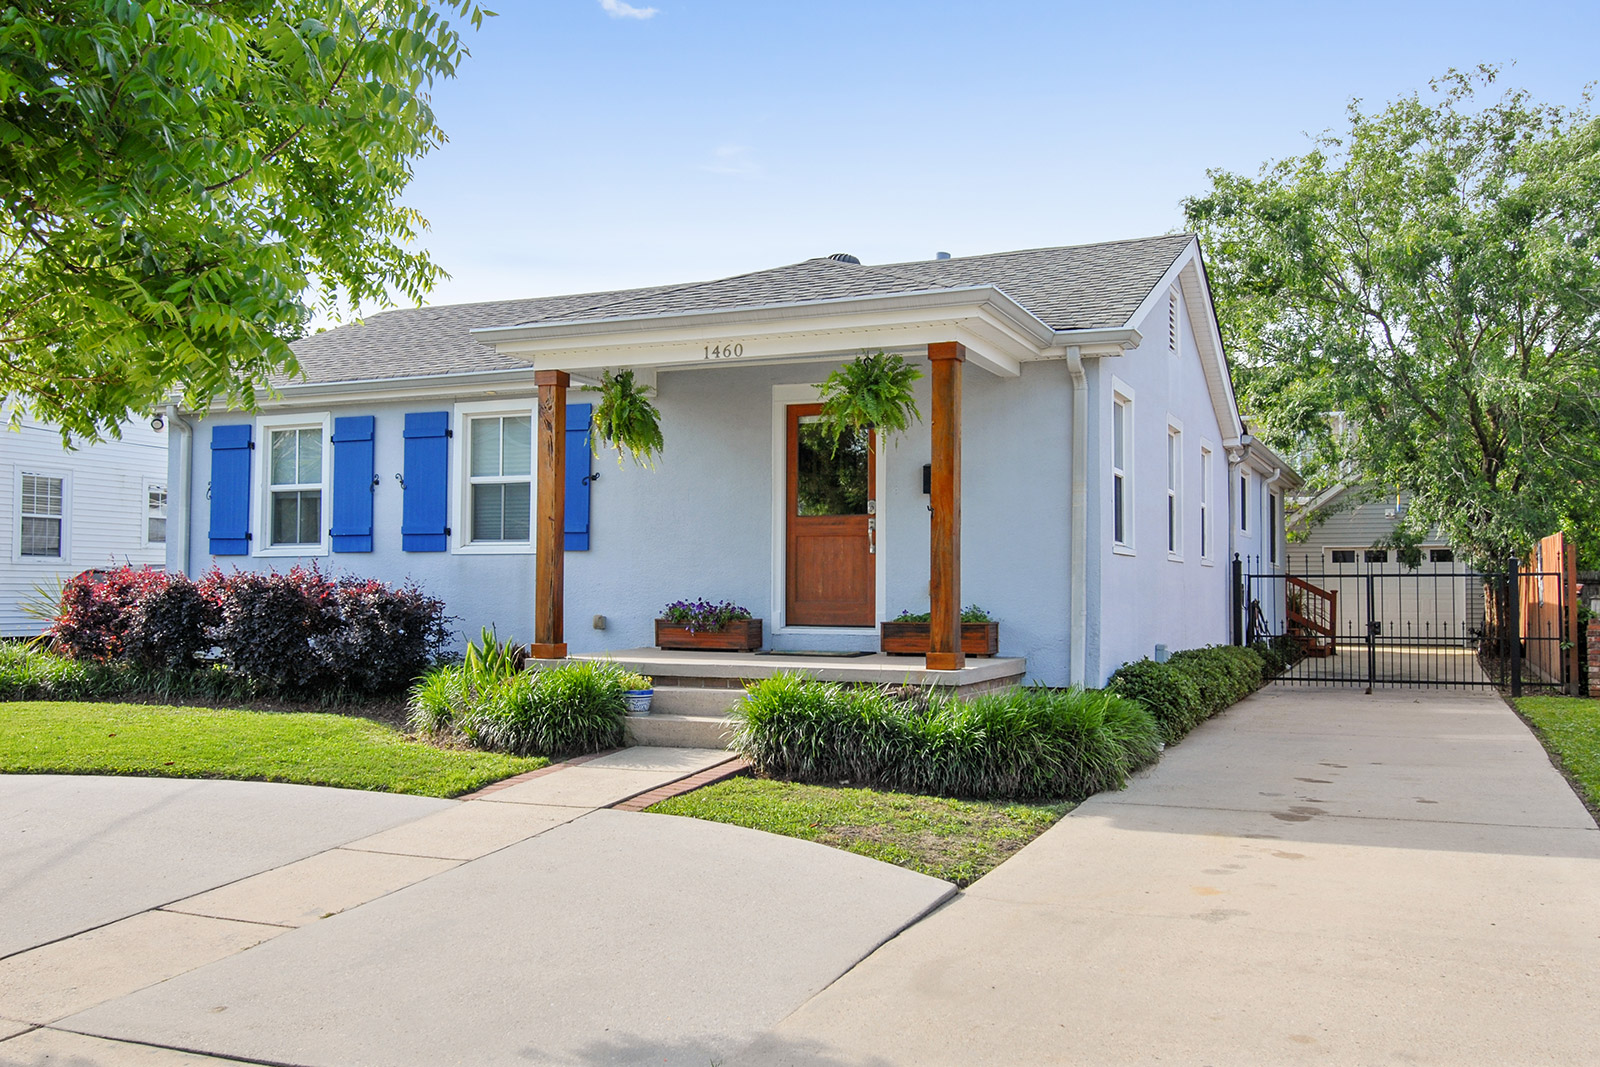 6/5/18** Our Newest Listing Is A Cottage In Gentilly With A Lot To Offer!  1460 Pressburg Is A Two Bedroom Home With Open Concept Living Spaces, 2  Bedrooms, ...